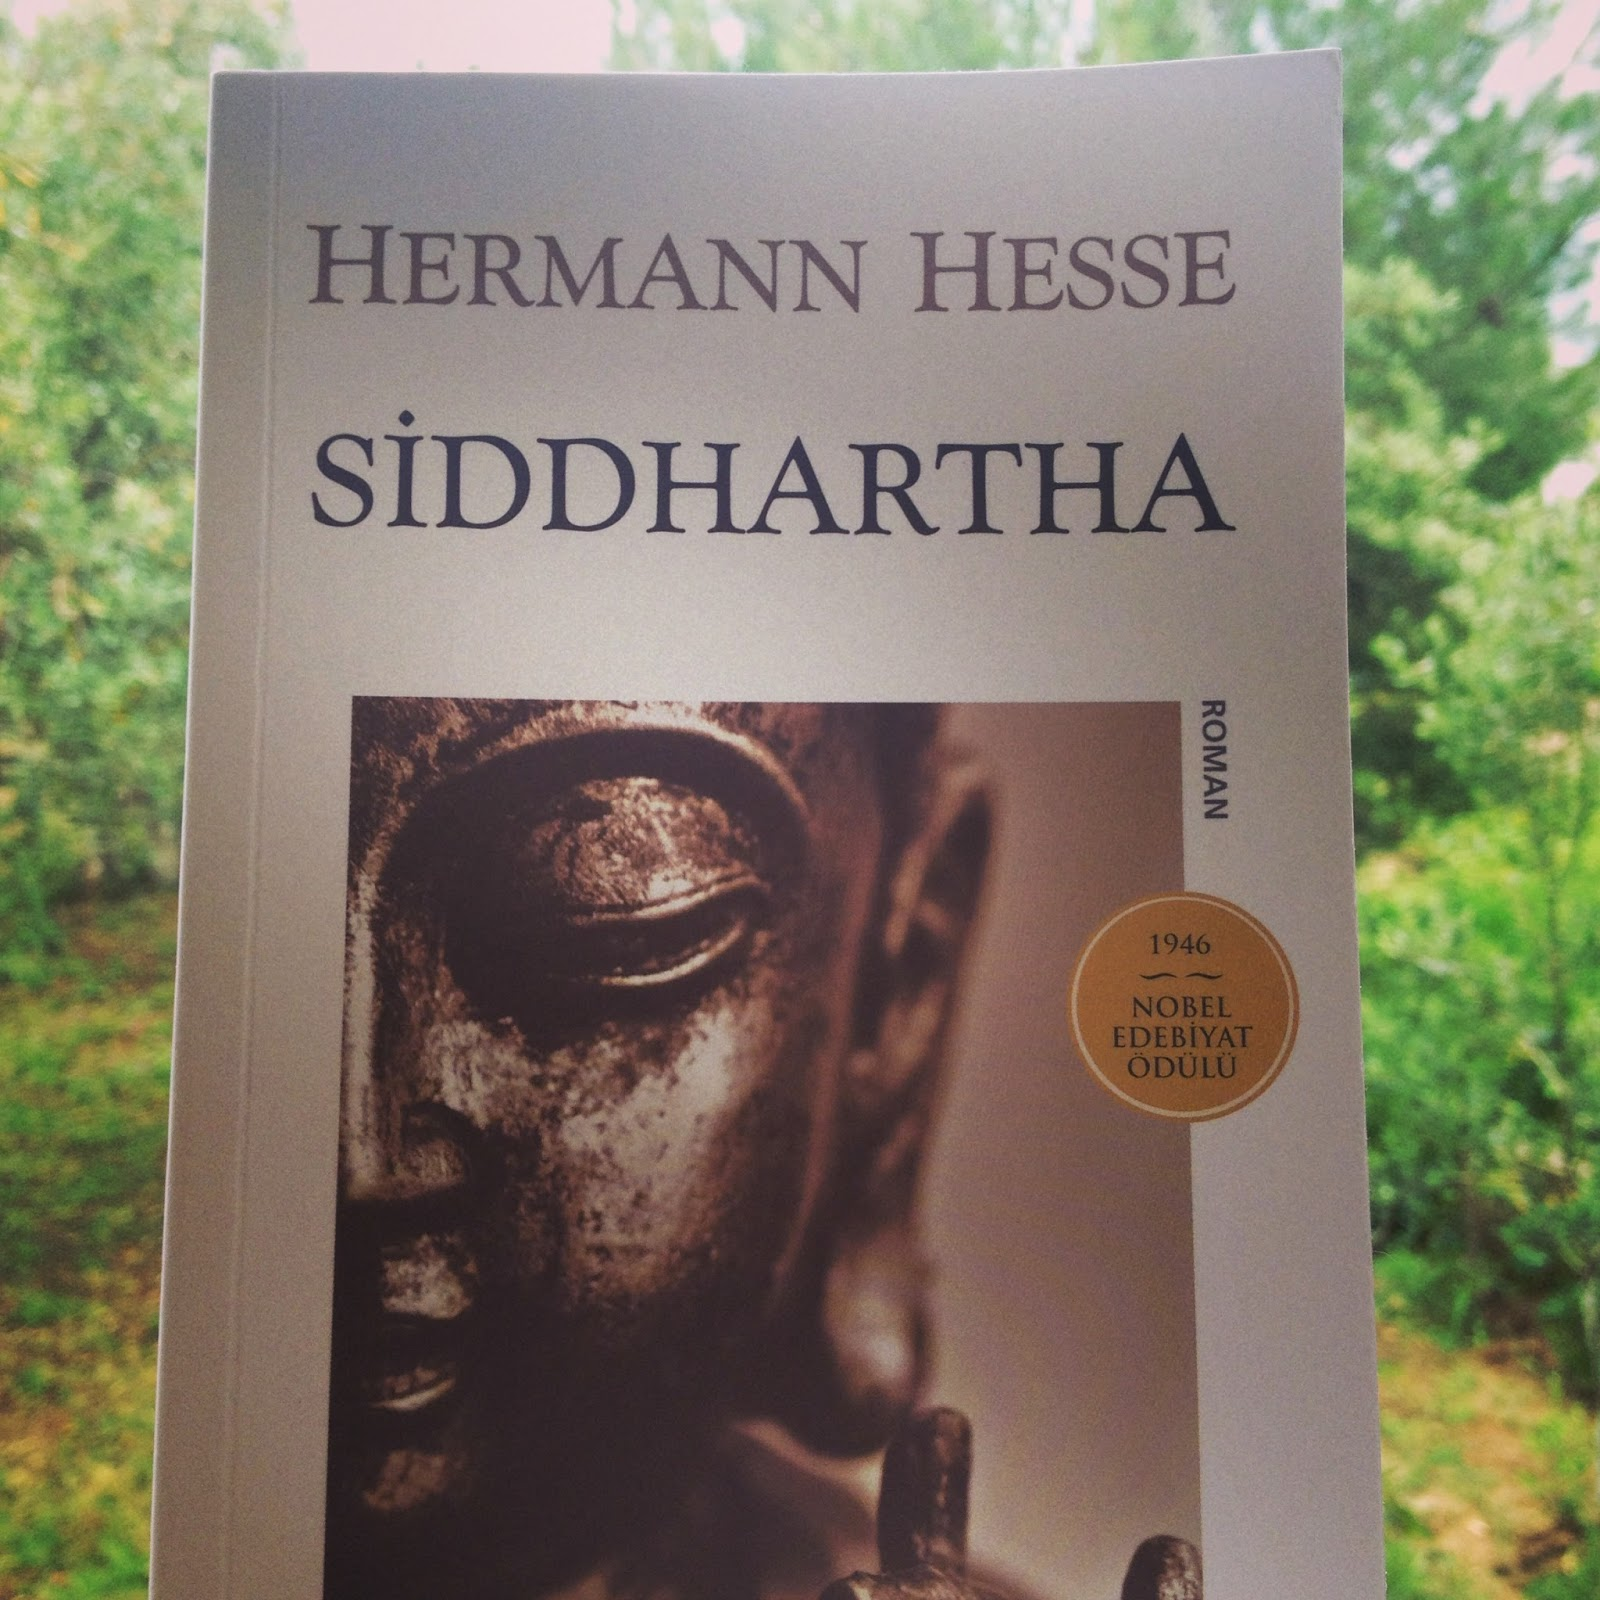 an analysis of siddnartha by herman hesse Hesse examines the search for spiritual fulfillment by having his characters embody aspects of personality and living that are unified, at various stages, by the protagonist siddhartha himself govinda, like siddhartha, is a seeker and then a samana, or an ascetic who has renounced all wordly possesions.